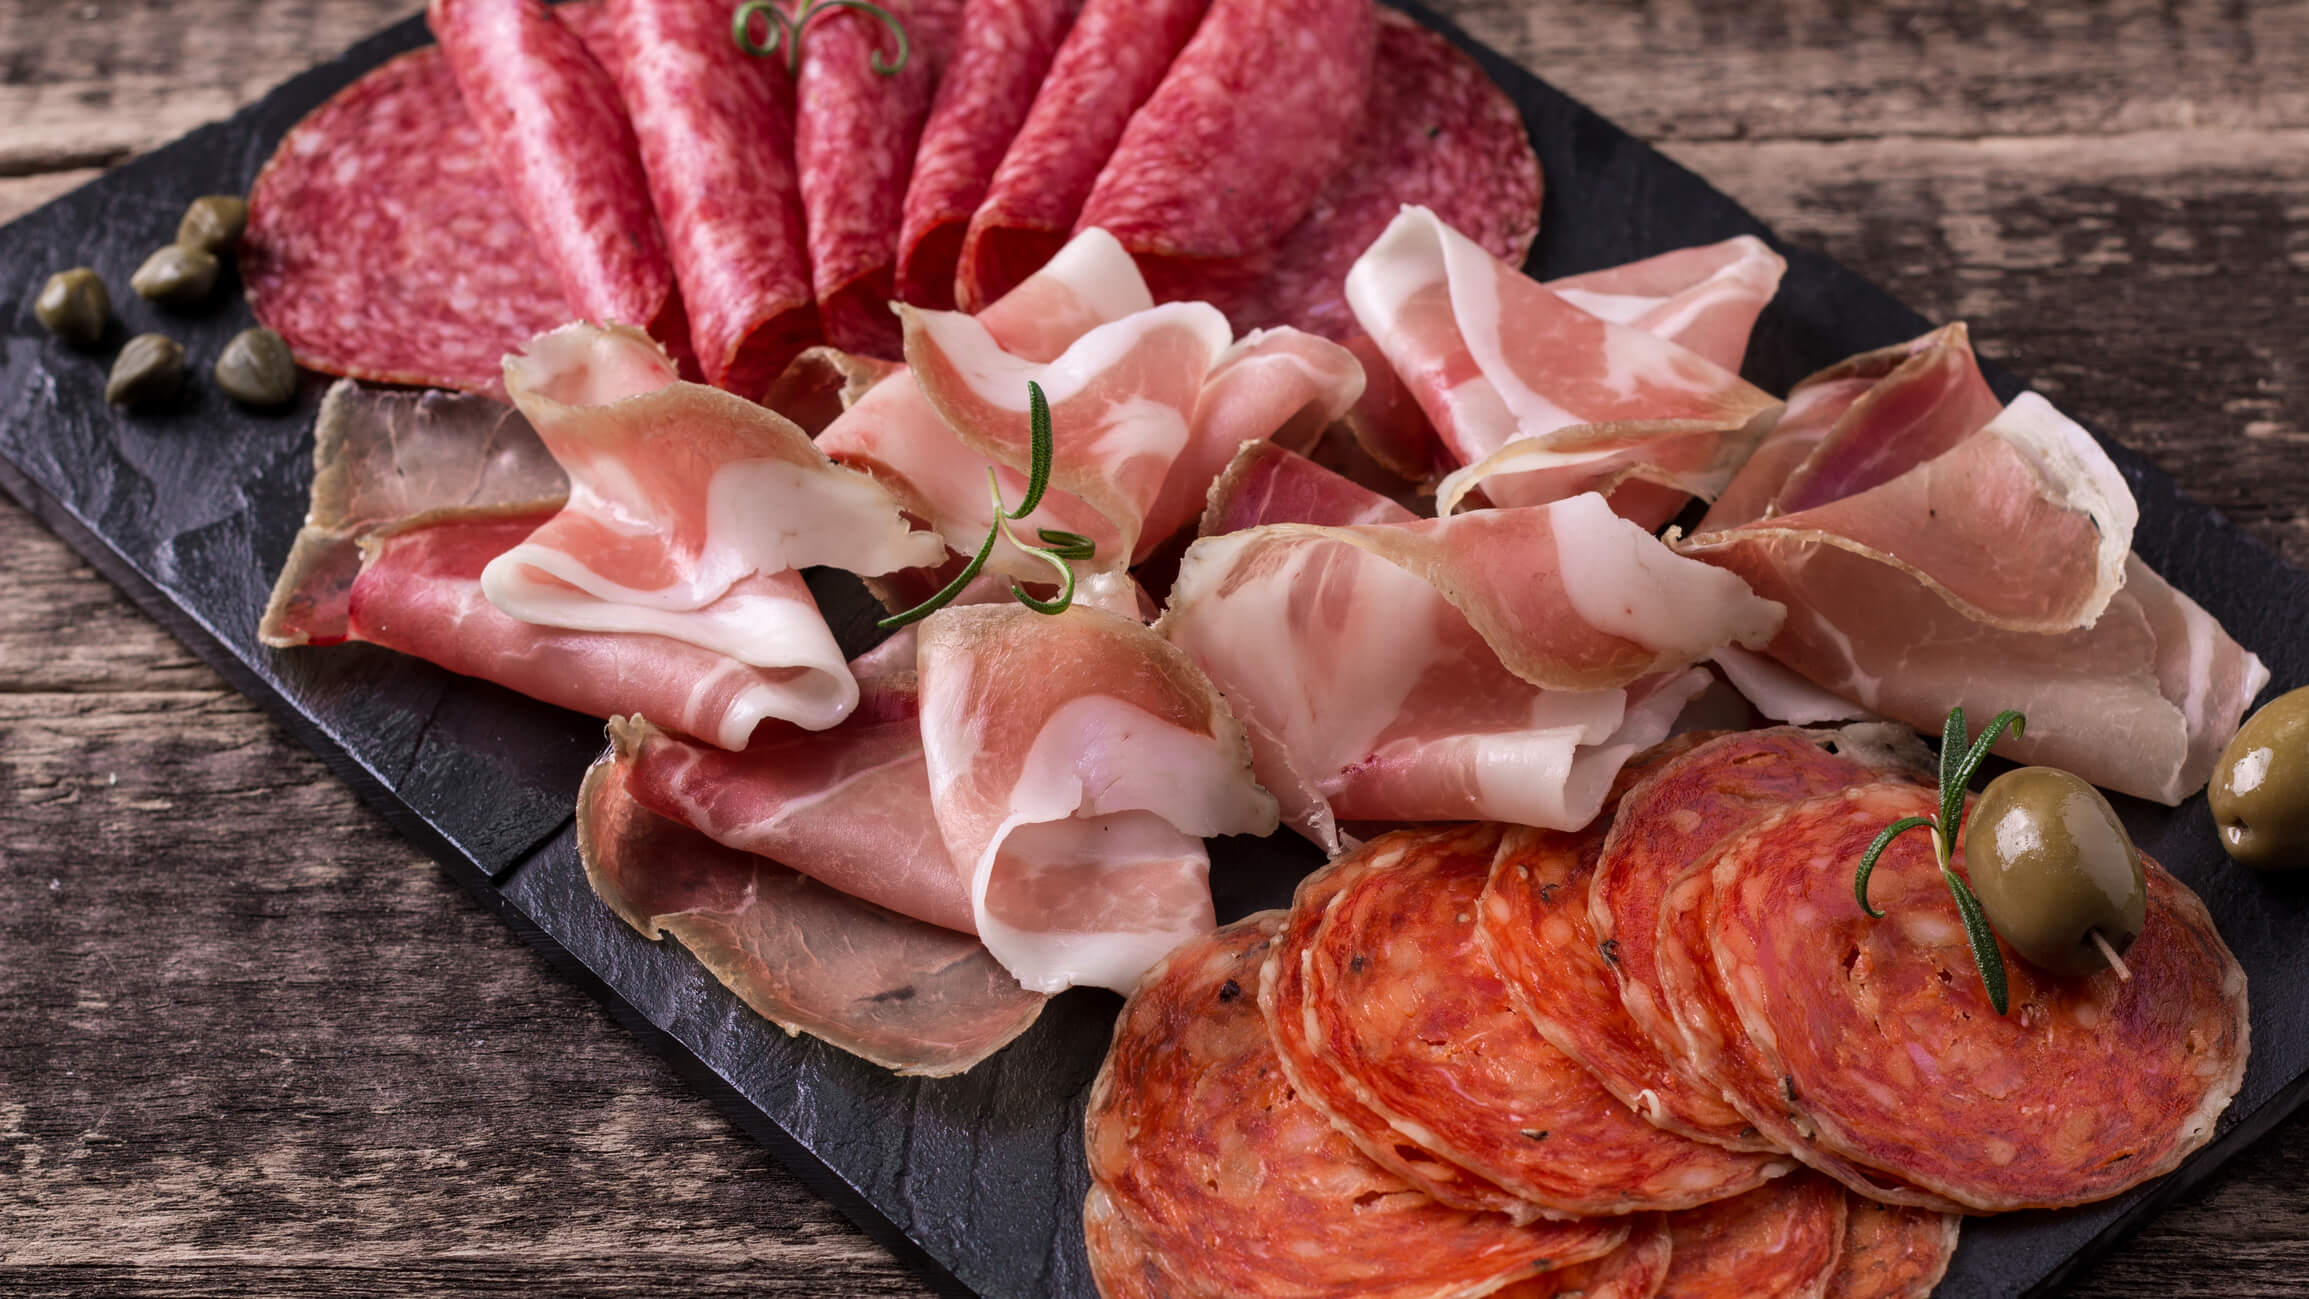 Cold cuts, meat platter